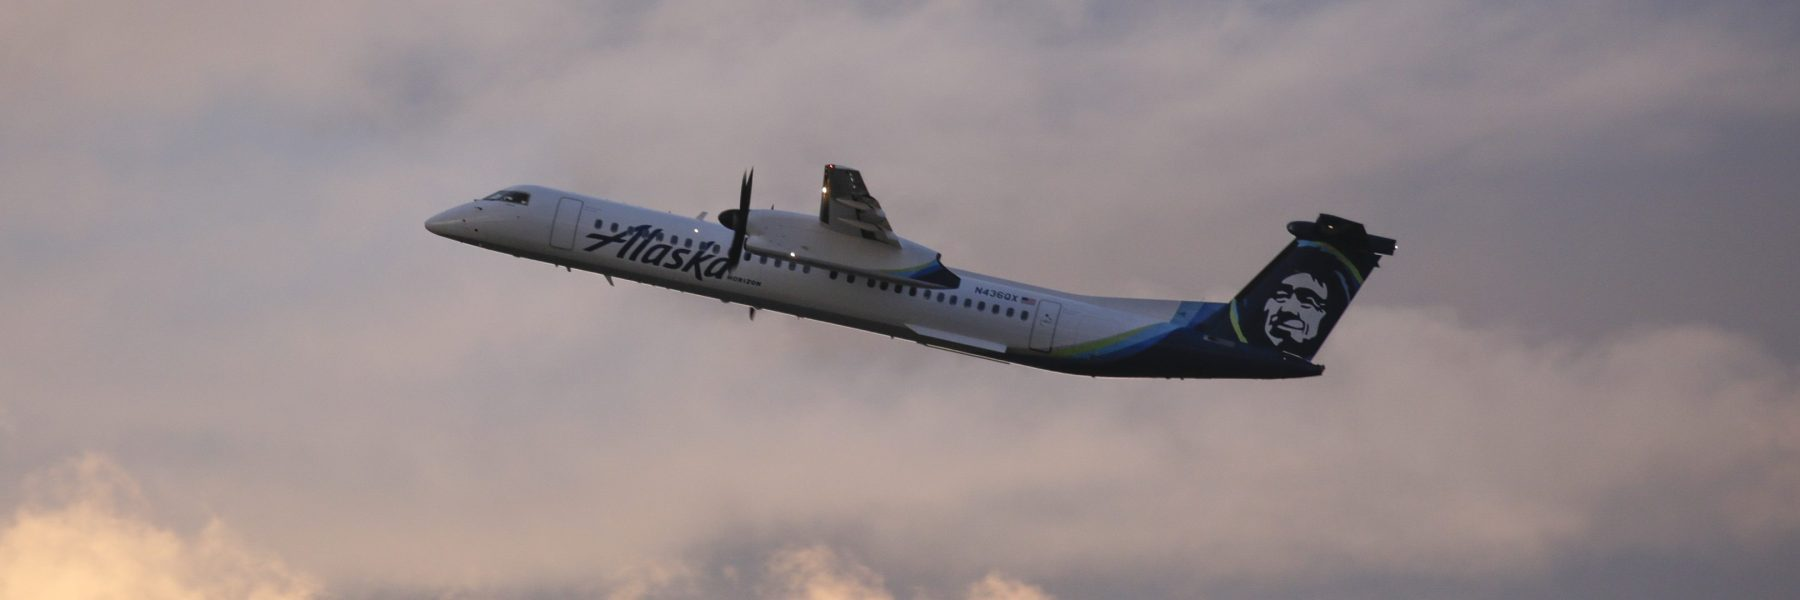 An Alaska Airlines Bombardier Dash 8 Q400 operated by Horizon Air takes off from at Seattle-Tacoma International Airport International Airport one day after Horizon Air ground crew member Richard Russell took a similar plane from the airport in Seattle, Washington on August 11, 2018.  (Photo by Jason Redmond / AFP)